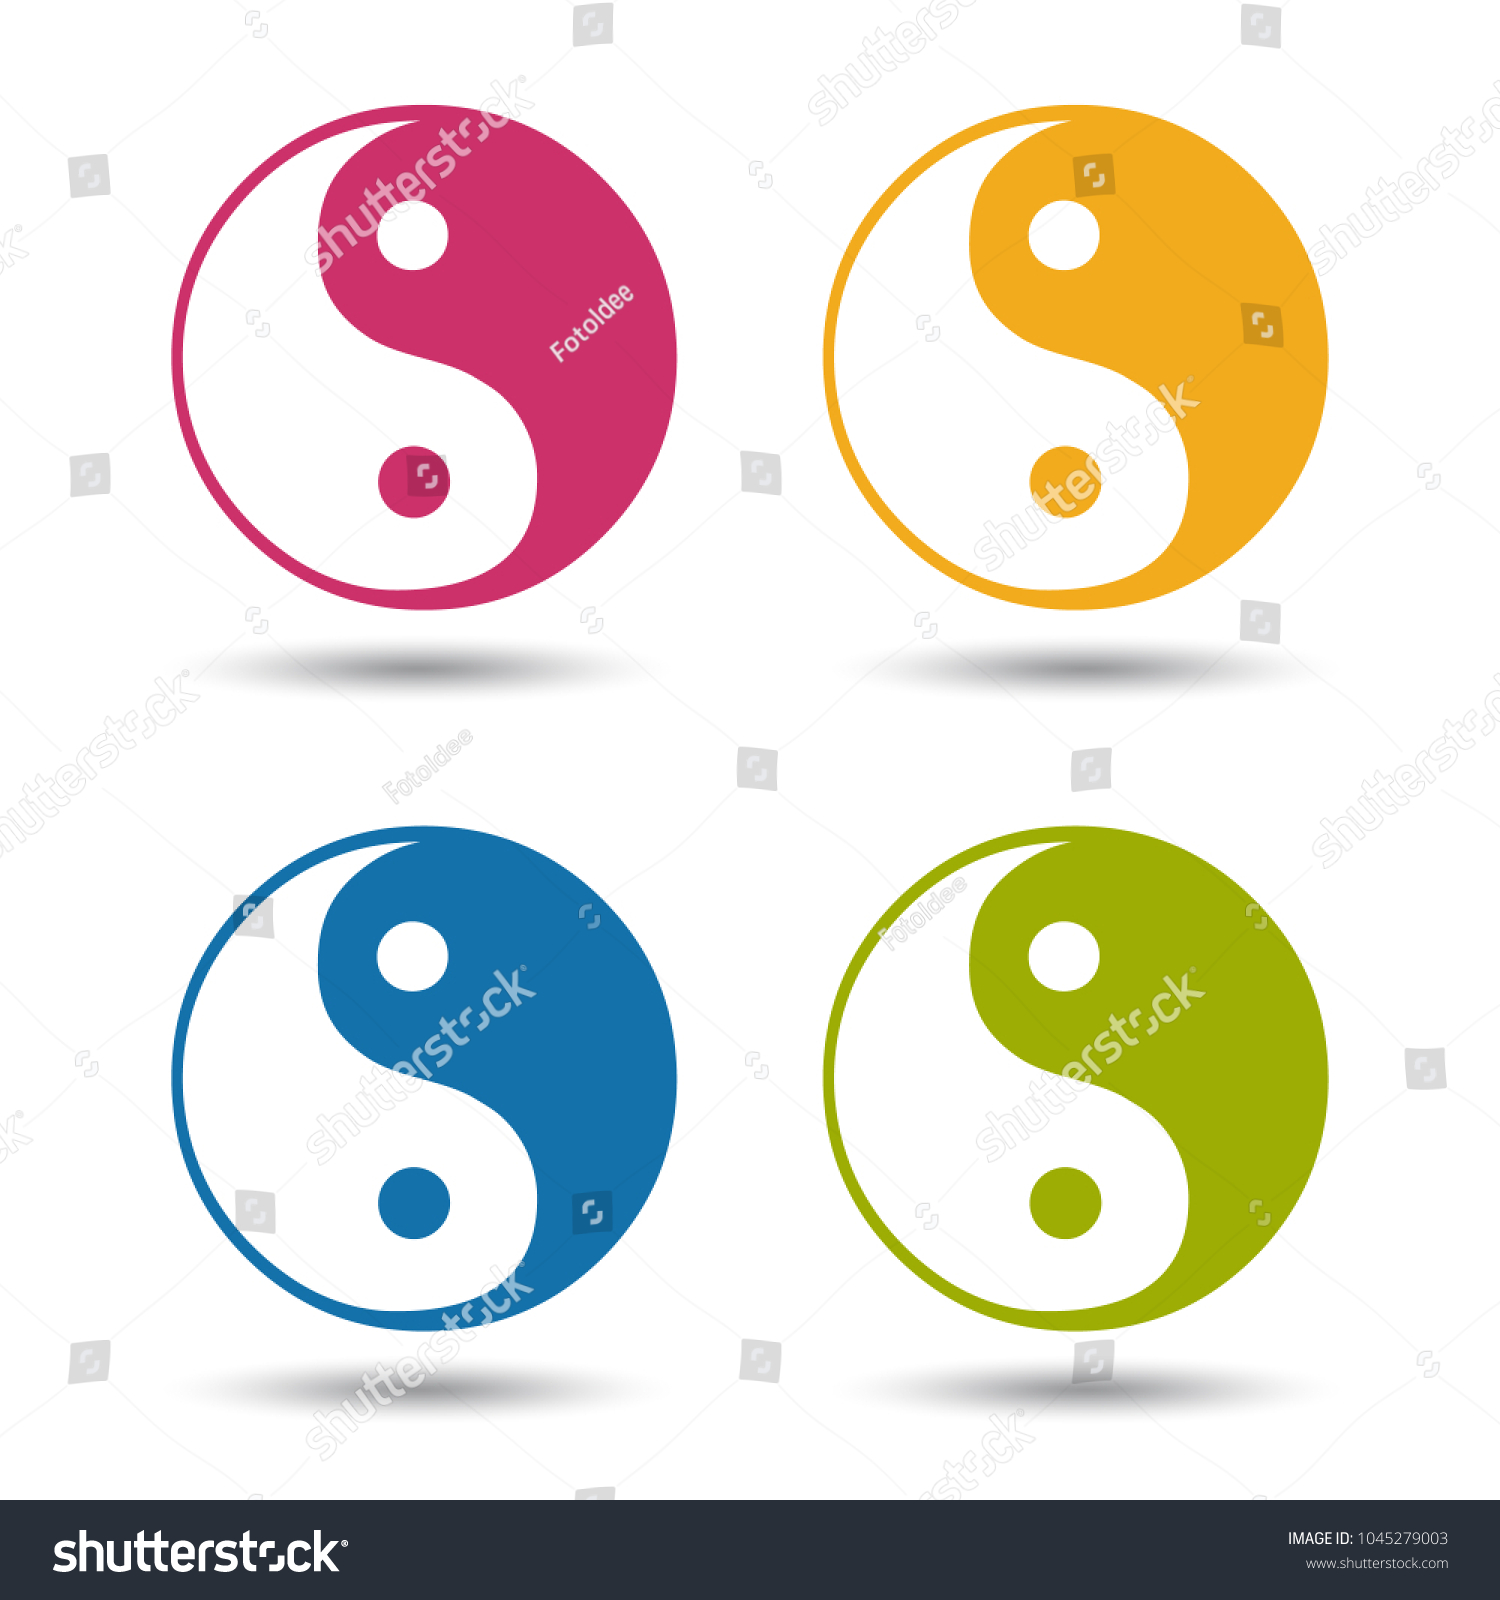 Yin yang symbol colourful vector icons stock vector 1045279003 yin yang symbol colourful vector icons isolated on white background biocorpaavc Gallery